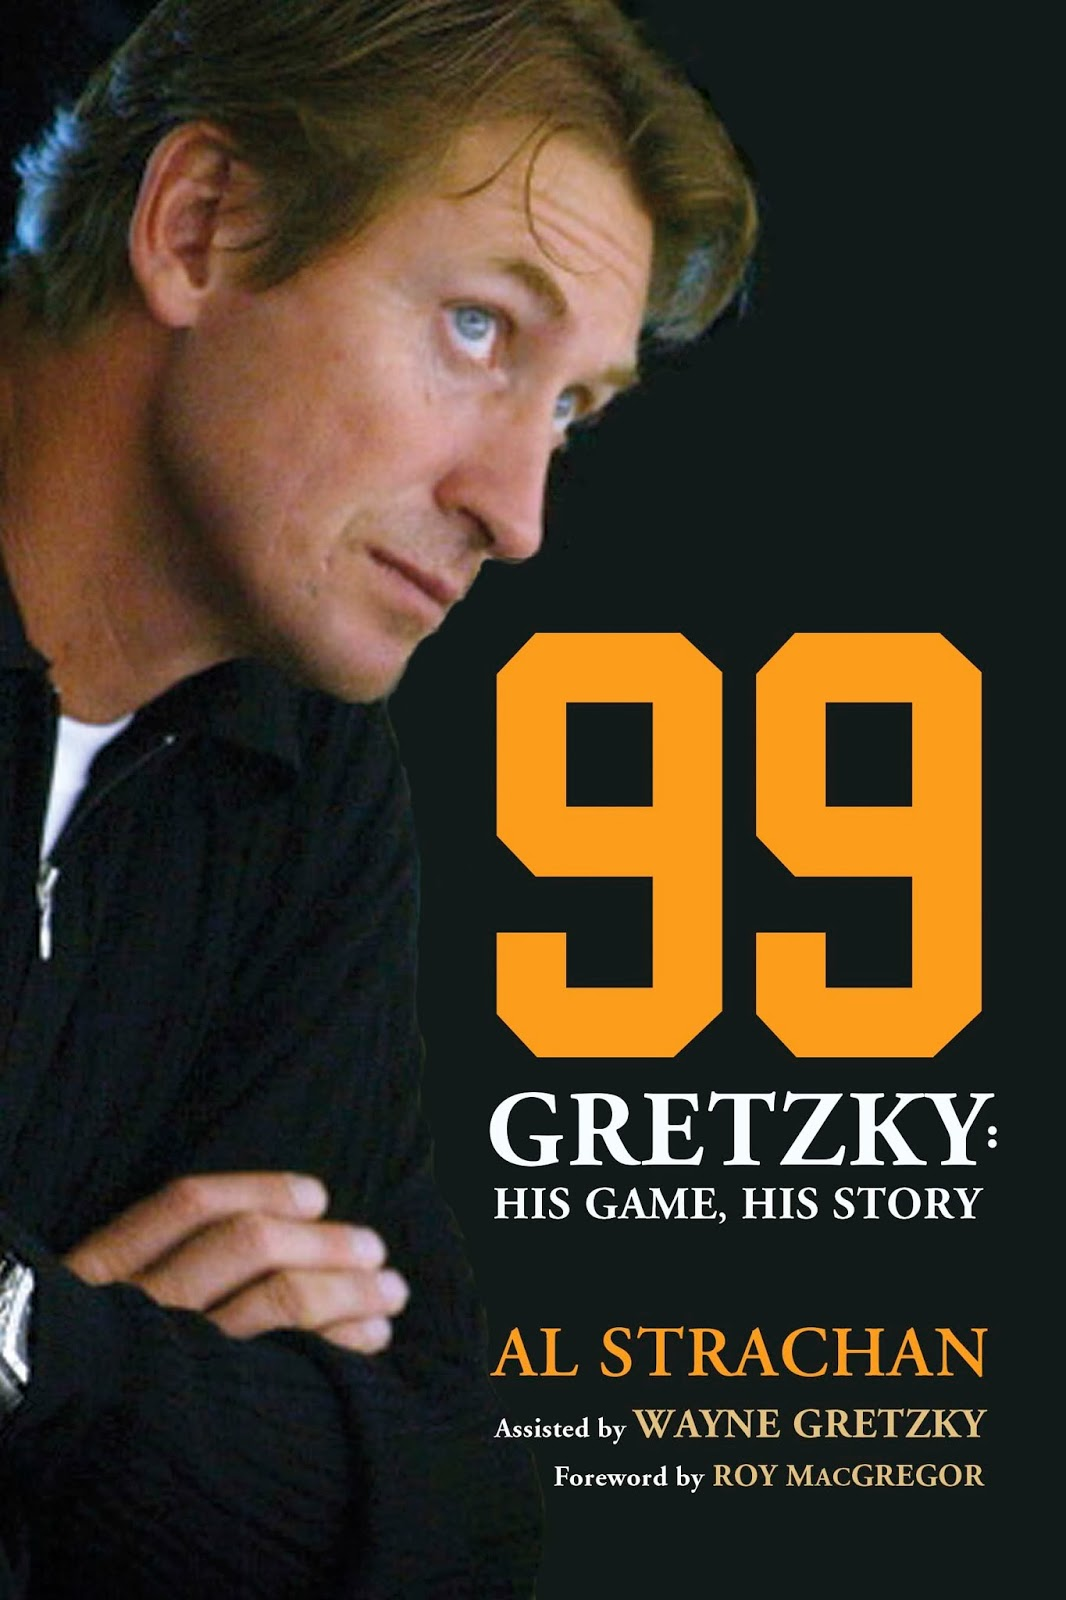 http://discover.halifaxpubliclibraries.ca/?q=title:99%20gretzky%20his%20game%20his%20story